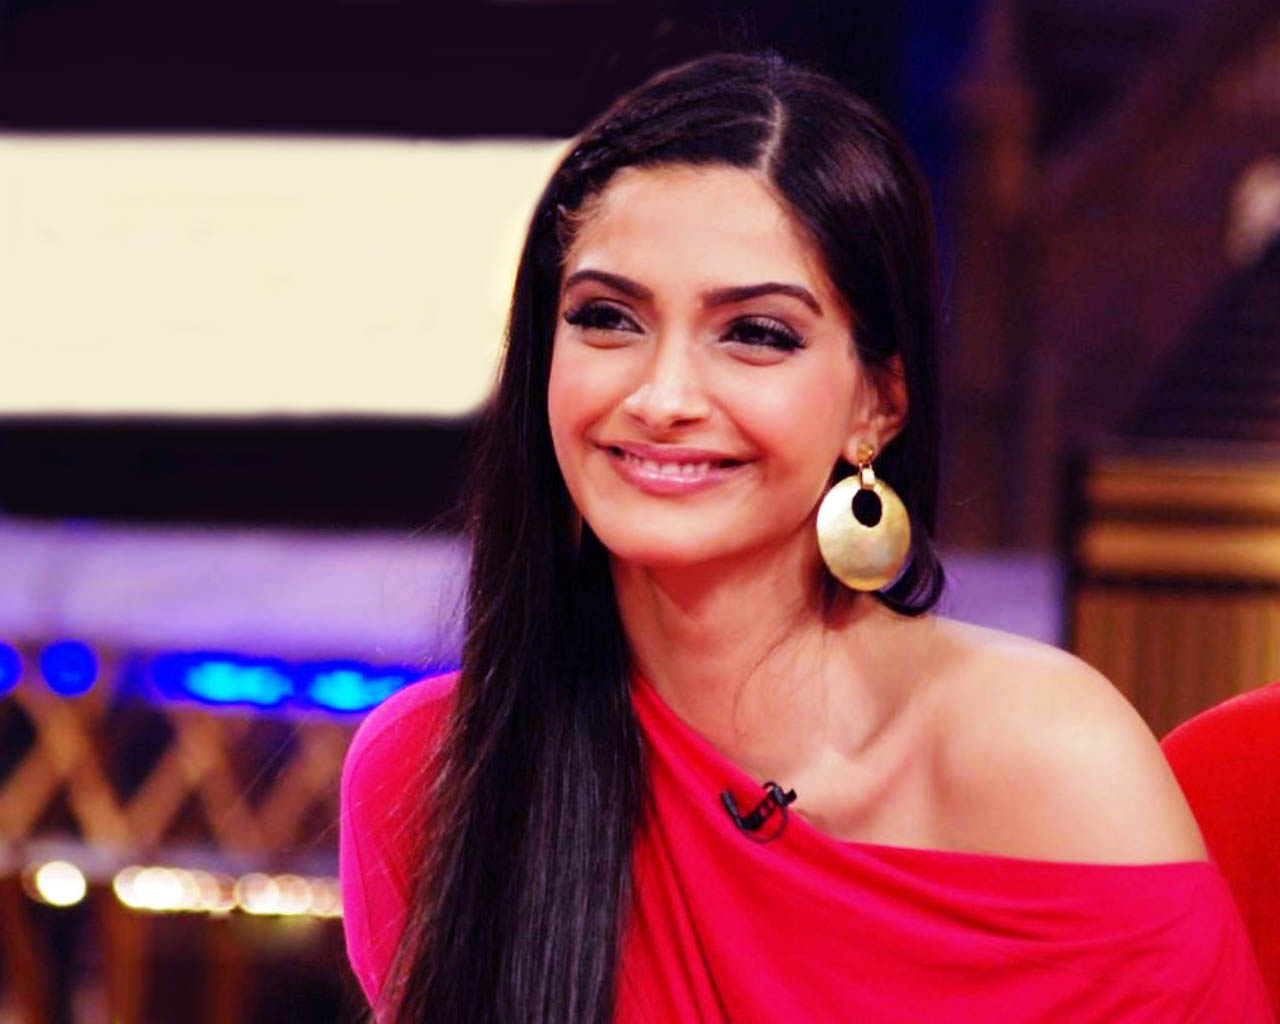 Sonam kapoor very beautiful in these wallpapers.